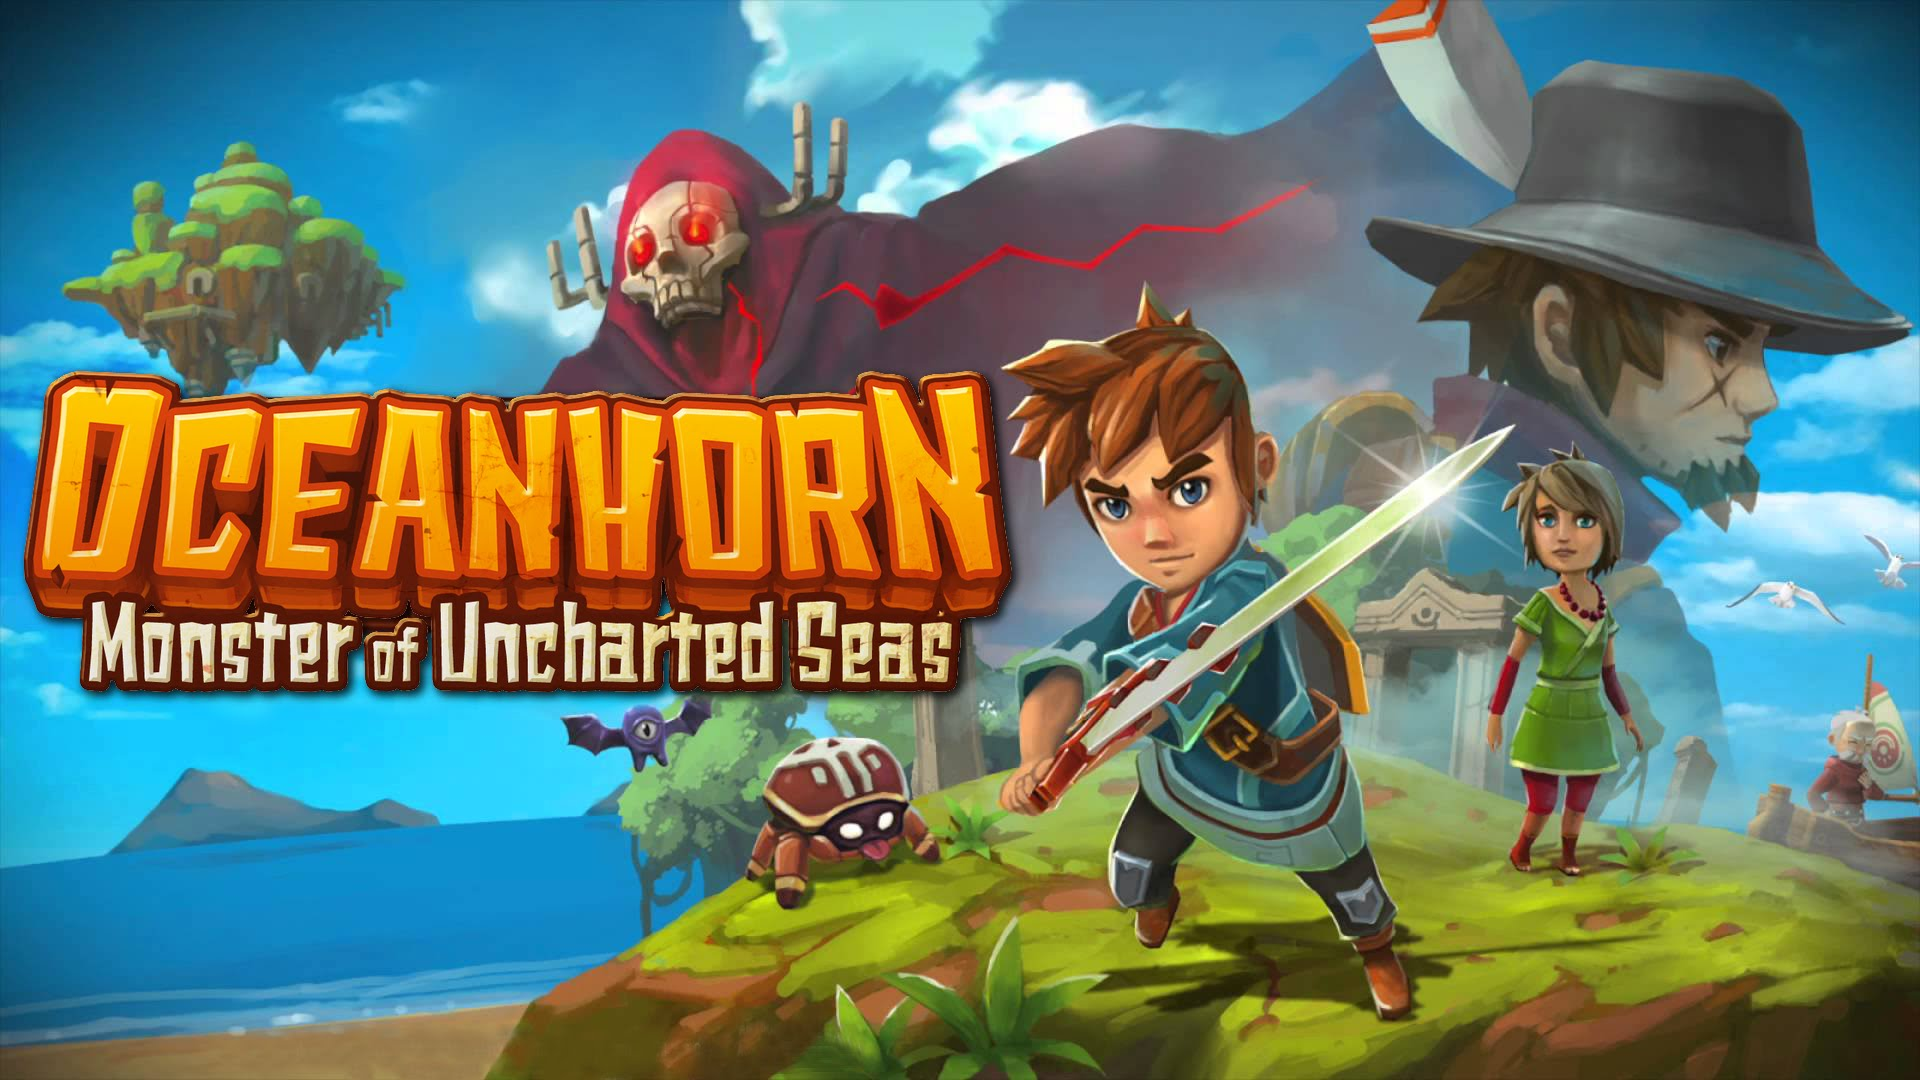 Oceanhorn: Monster of Uncharted Seas (Nintendo Switch Review)